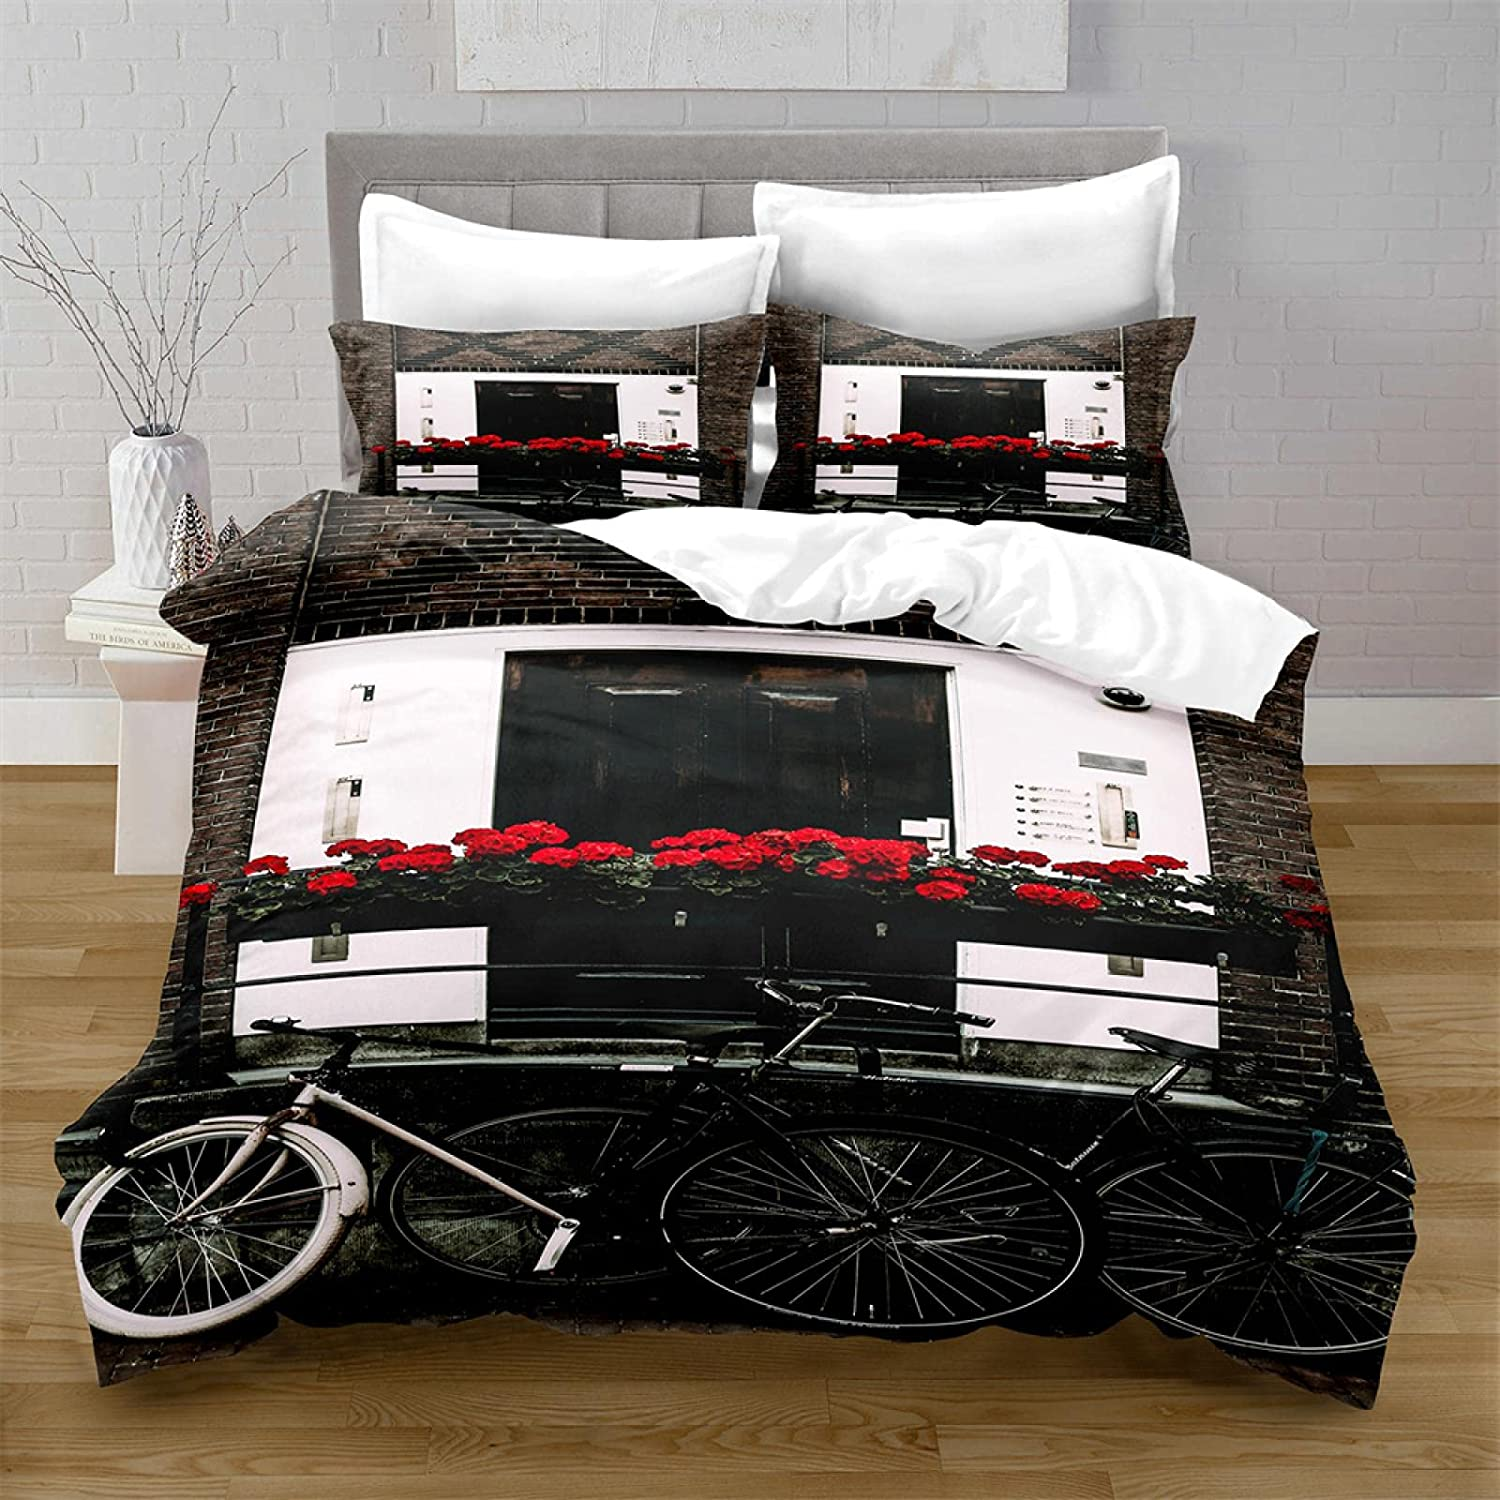 HQHM Duvet Cover King 3 Pieces Bicycle Street White Under blast sales And Limited time cheap sale Black Fl